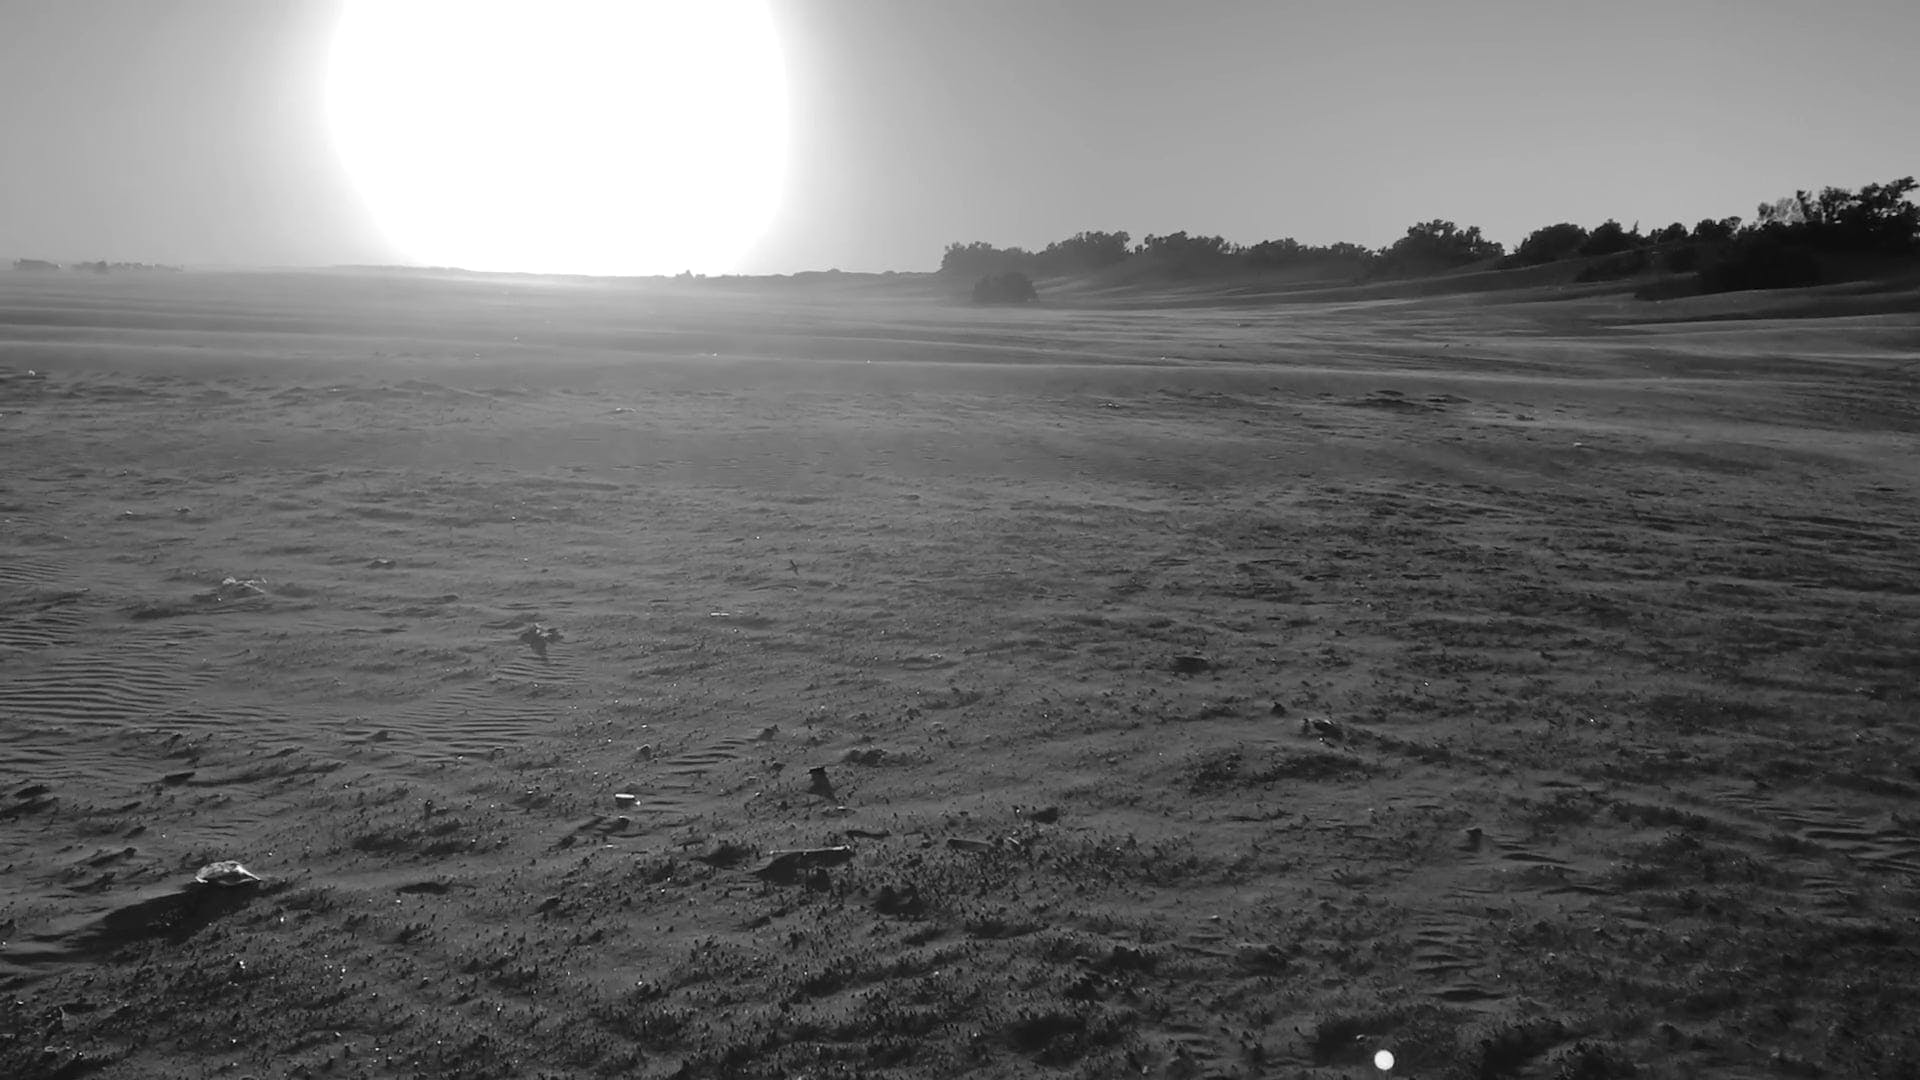 Black And White Video Of Field